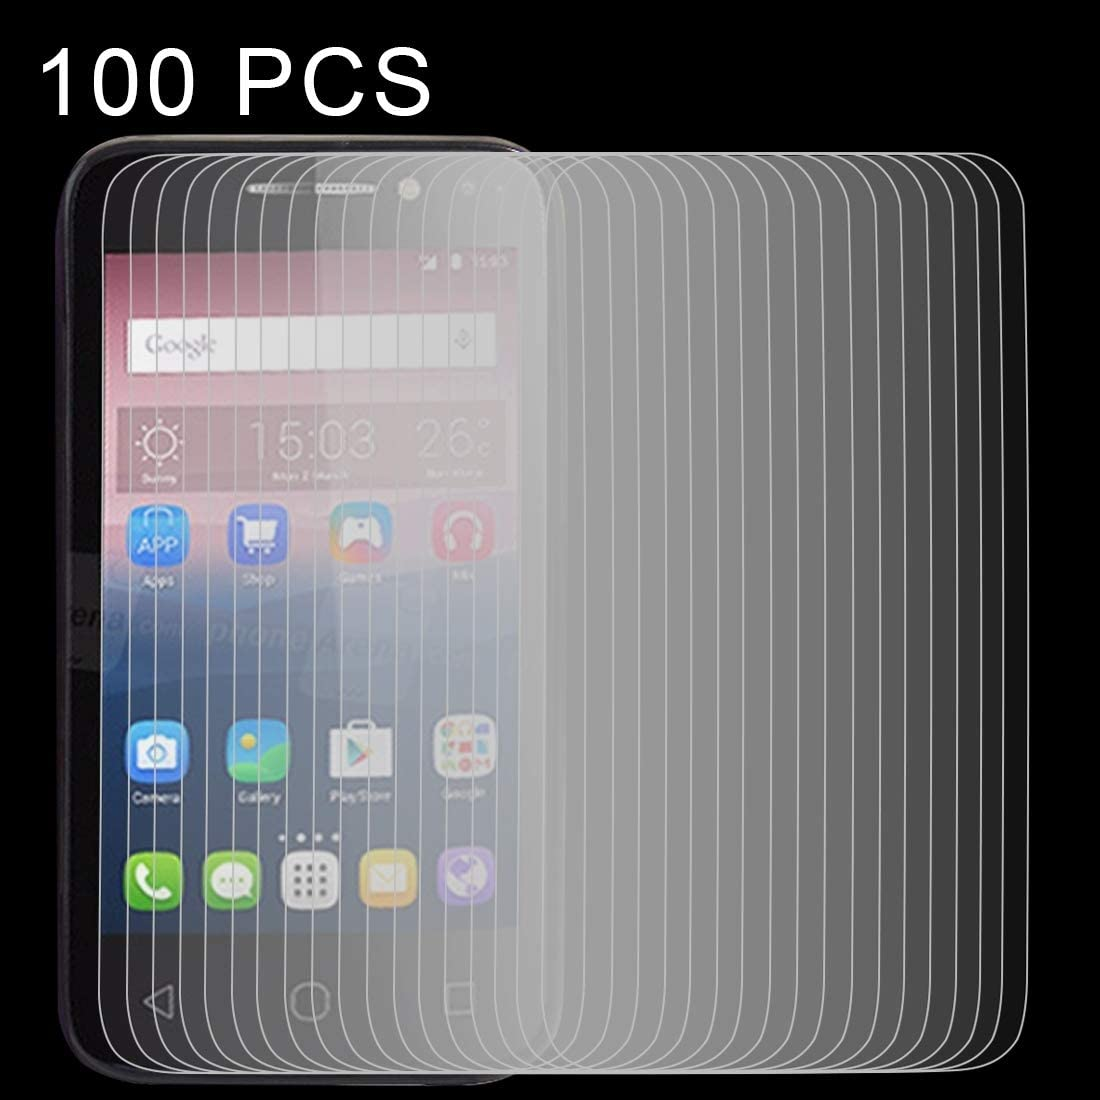 ZYS Screen Protector 100 PCS 0.26mm 9H 2.5D Tempered Glass Film for Alcatel Pixi 4 4.0 inch